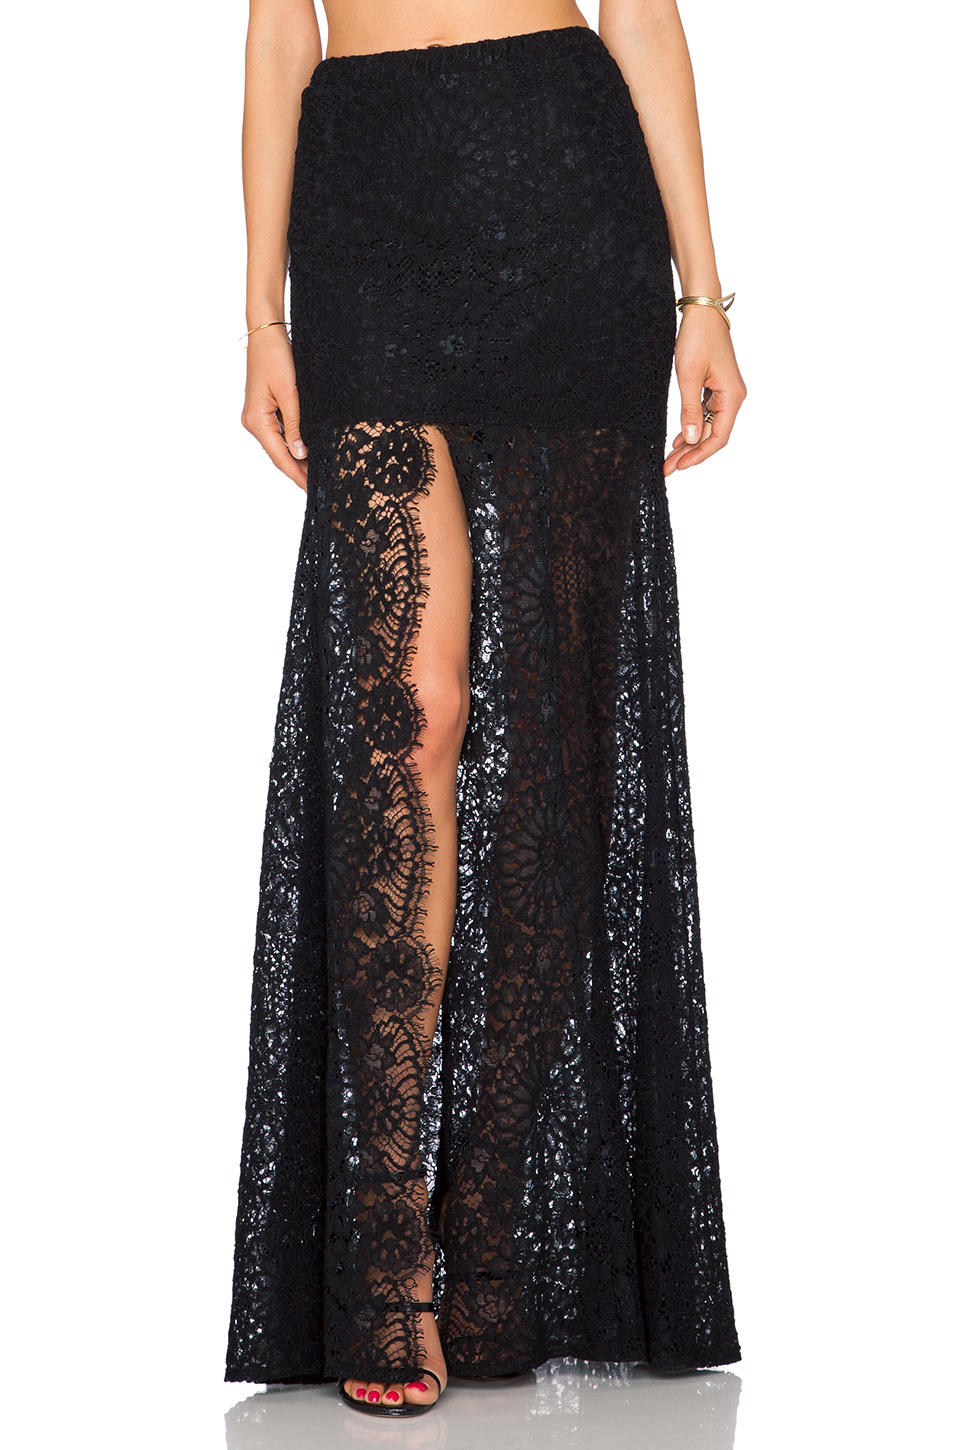 Alexis | Hermes Lace Maxi Skirt